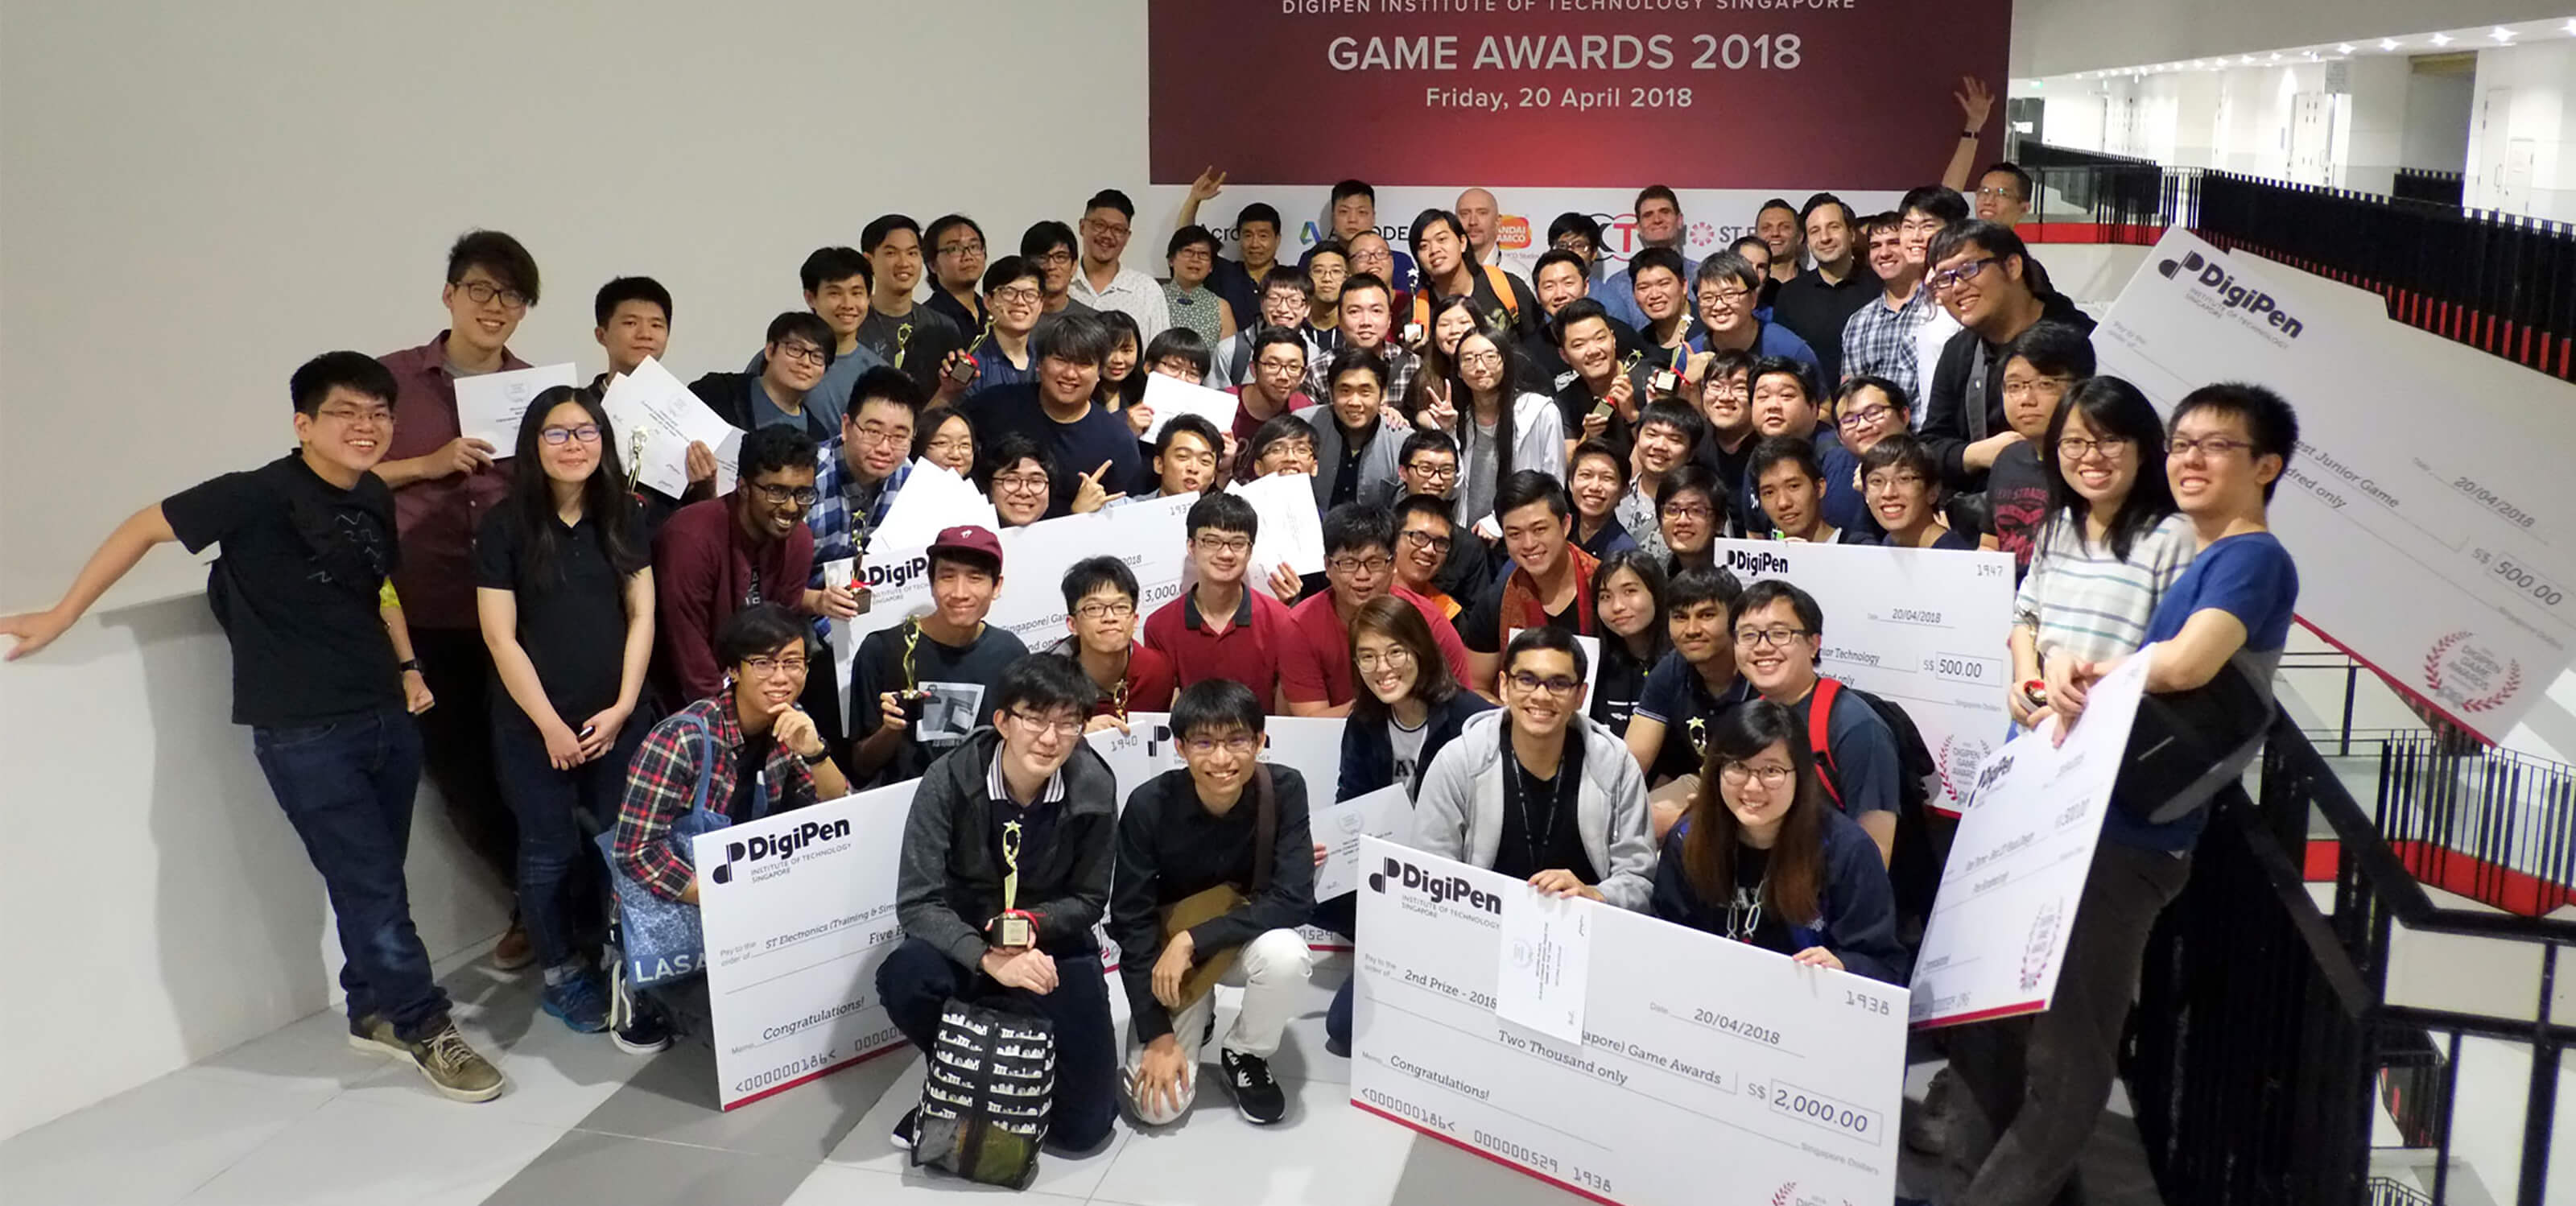 Participants in the DigiPen (Singapore) Game and Animation Awards pose, with award-winners holding giant novelty checks up front